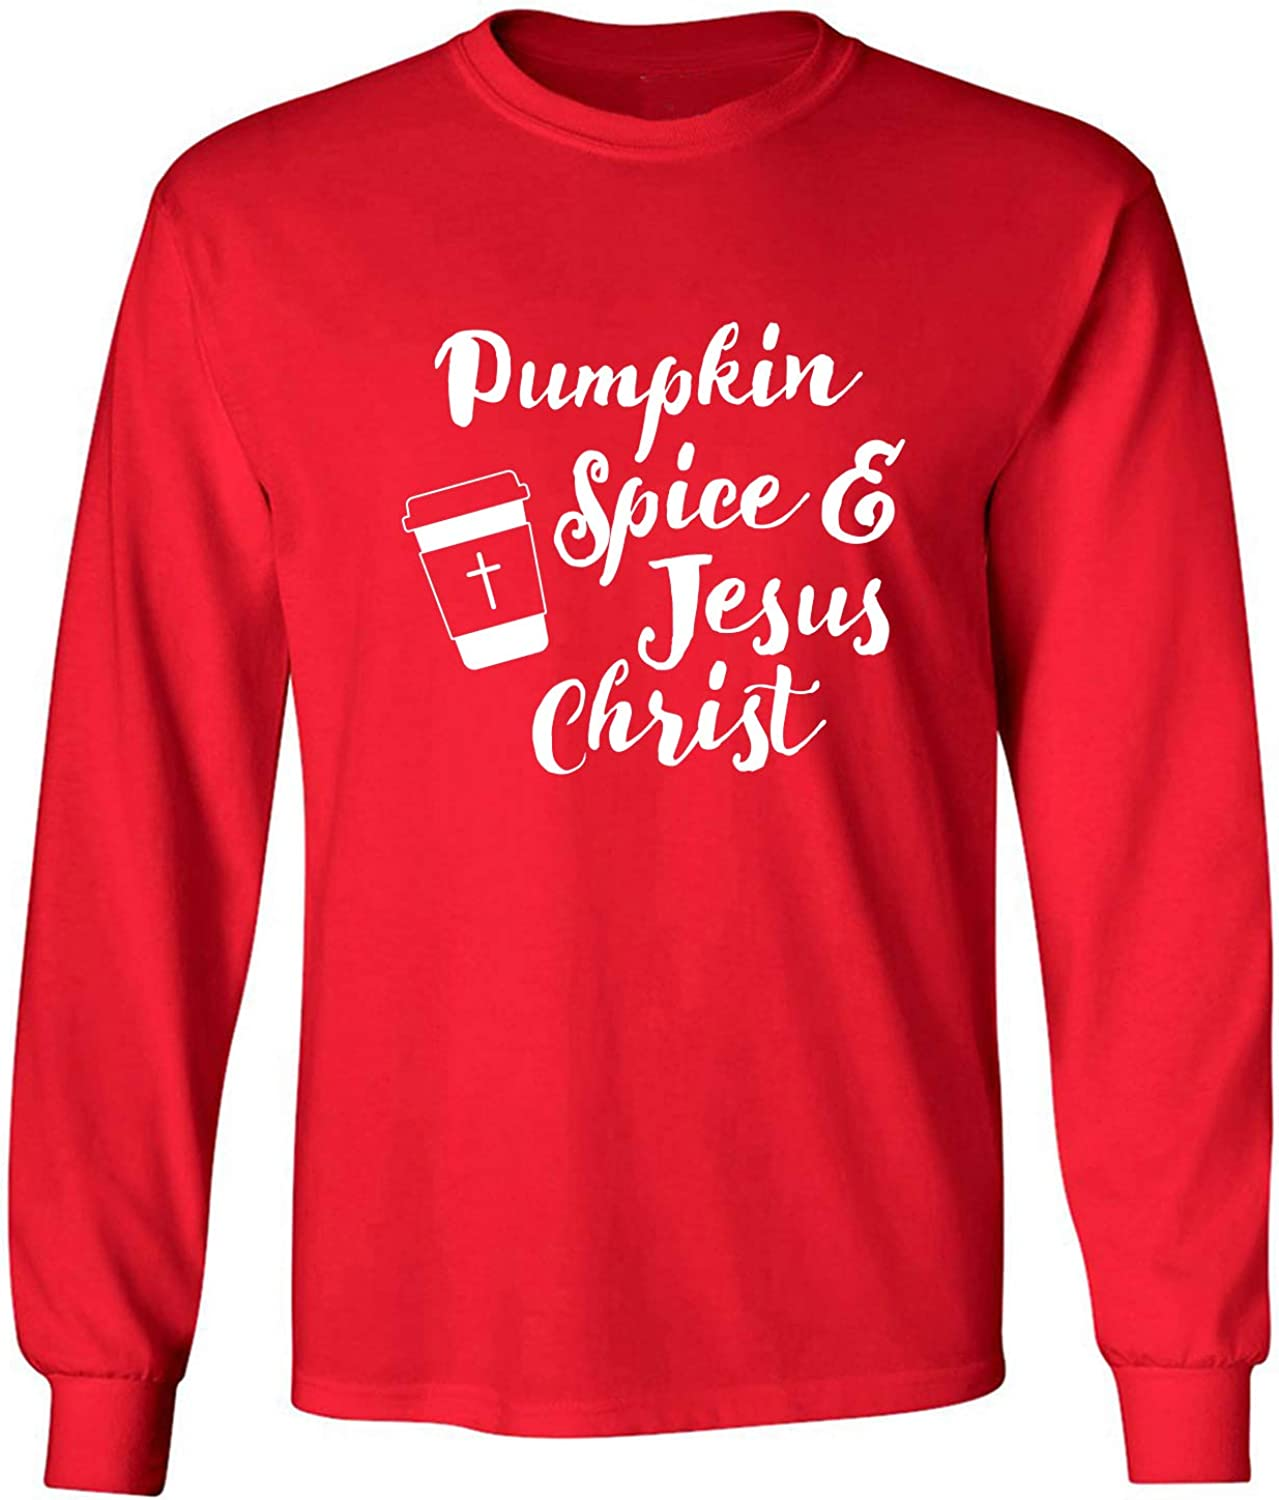 Pumpkin Spice & Jesus Christ Adult Long Sleeve T-Shirt in Red - XXXX-Large